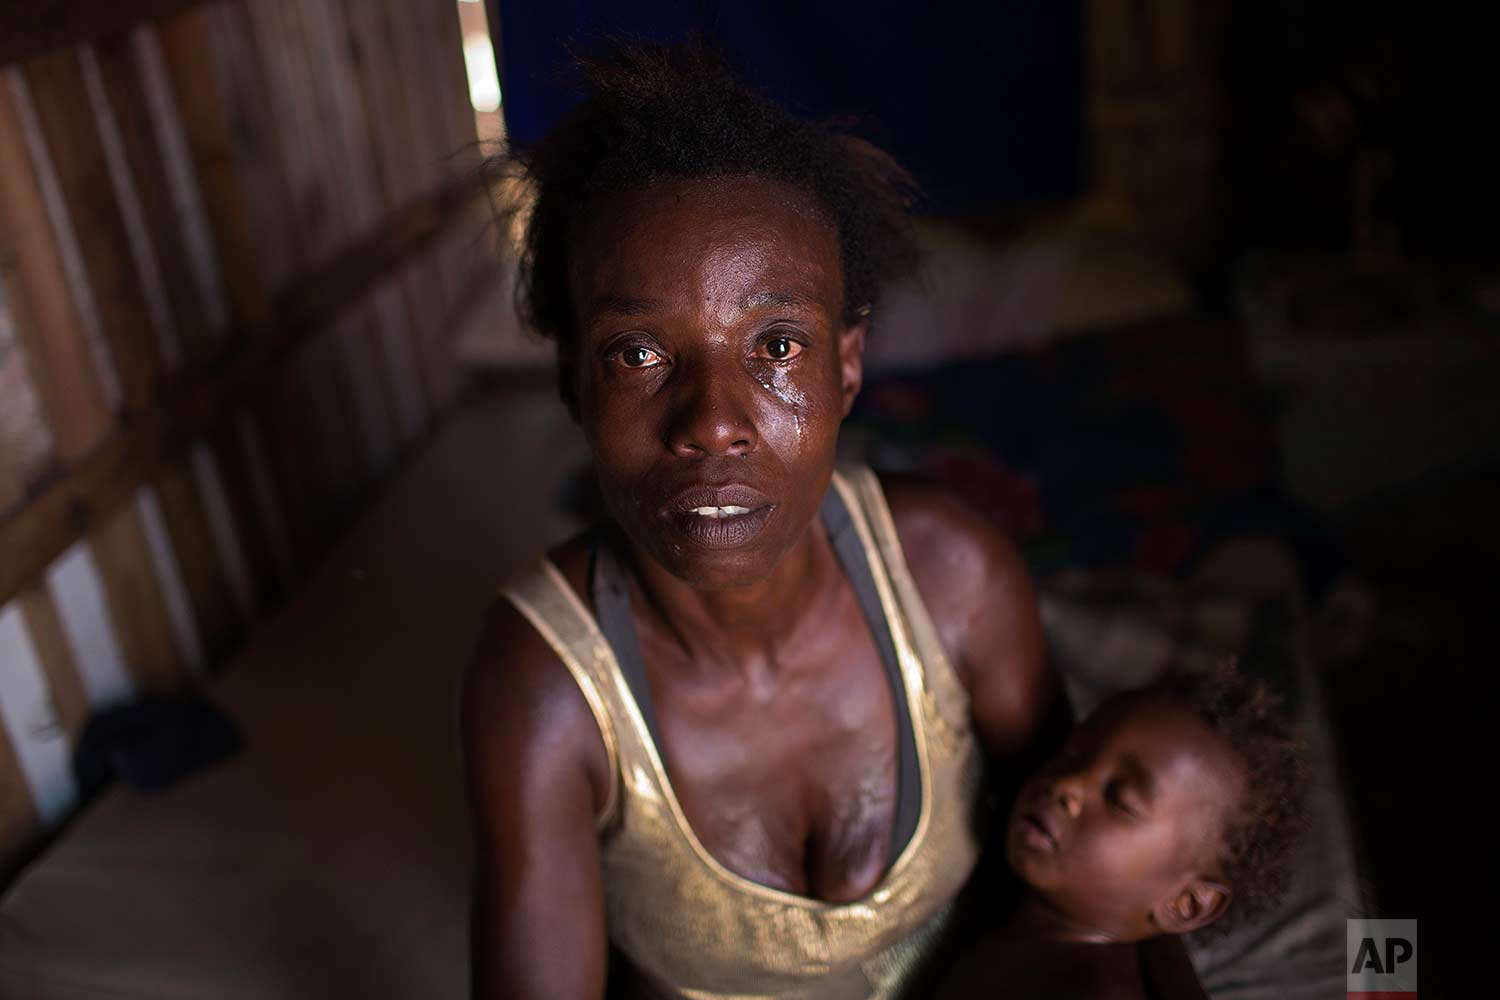 """In this Oct. 20, 2017 photo, Simone Batista, holding her baby Arthur, looks into the camera as tears roll down her cheeks while she recounts being cut from the """"Bolsa Familia"""" government subsidy program for low-income people, at her shack home in the Jardim Gramacho slum of Rio de Janeiro, Brazil. (AP Photo/Silvia Izquierdo)"""